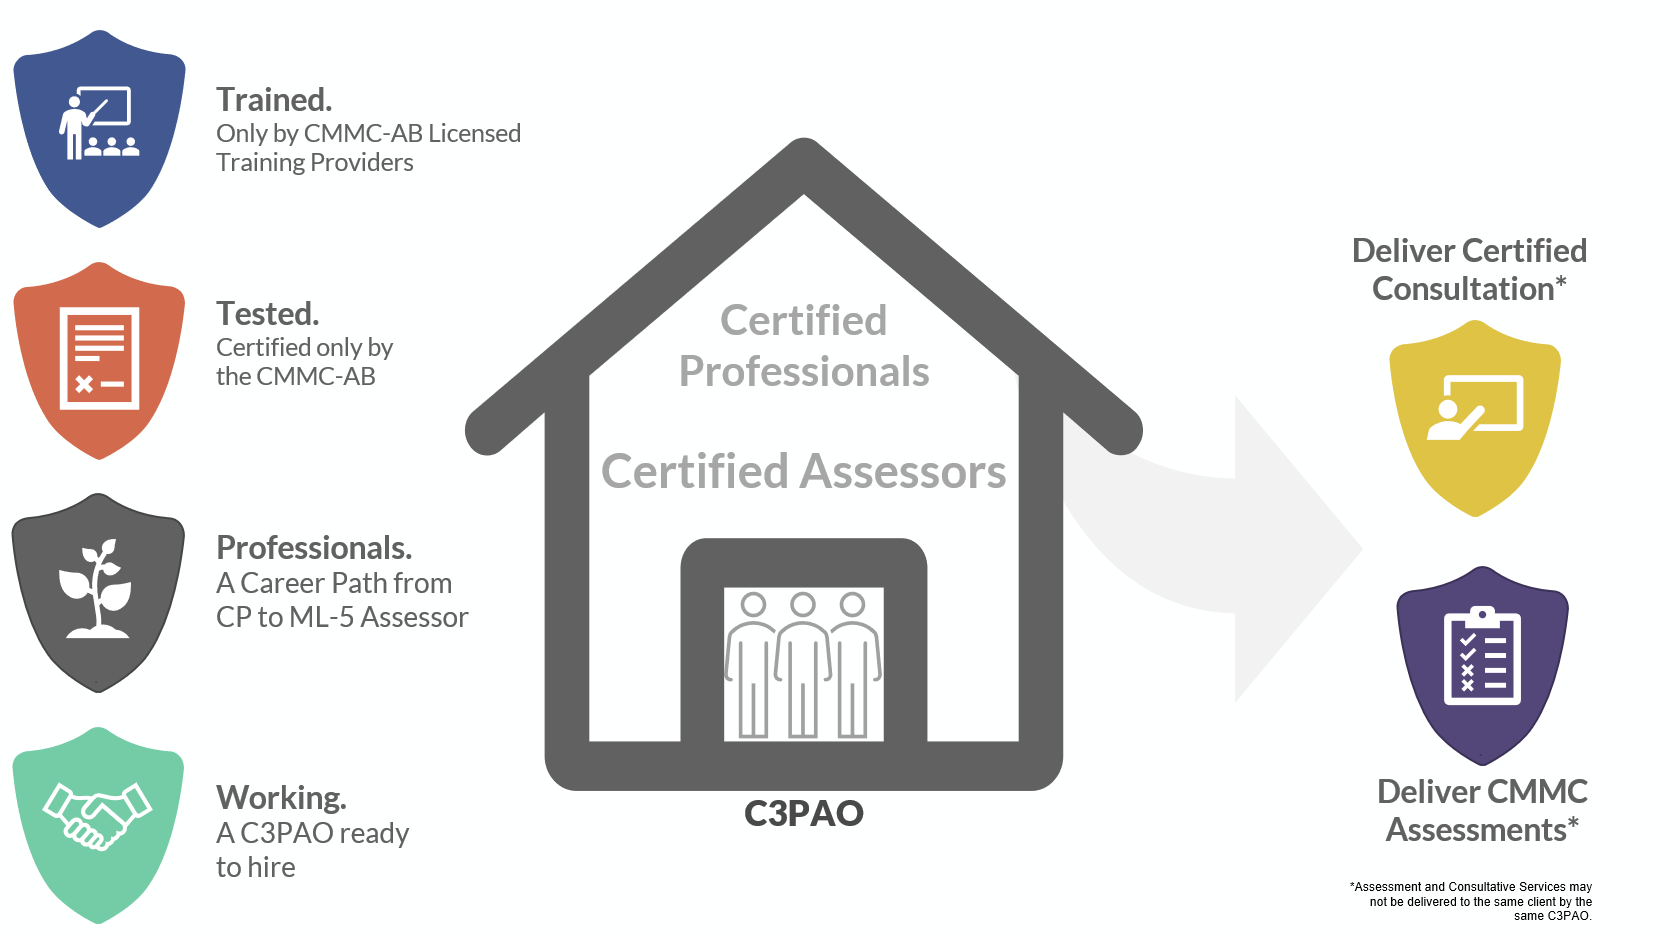 Infographic showing the features of the Certified CMMC Professional and Certified CMMC Assessor roles